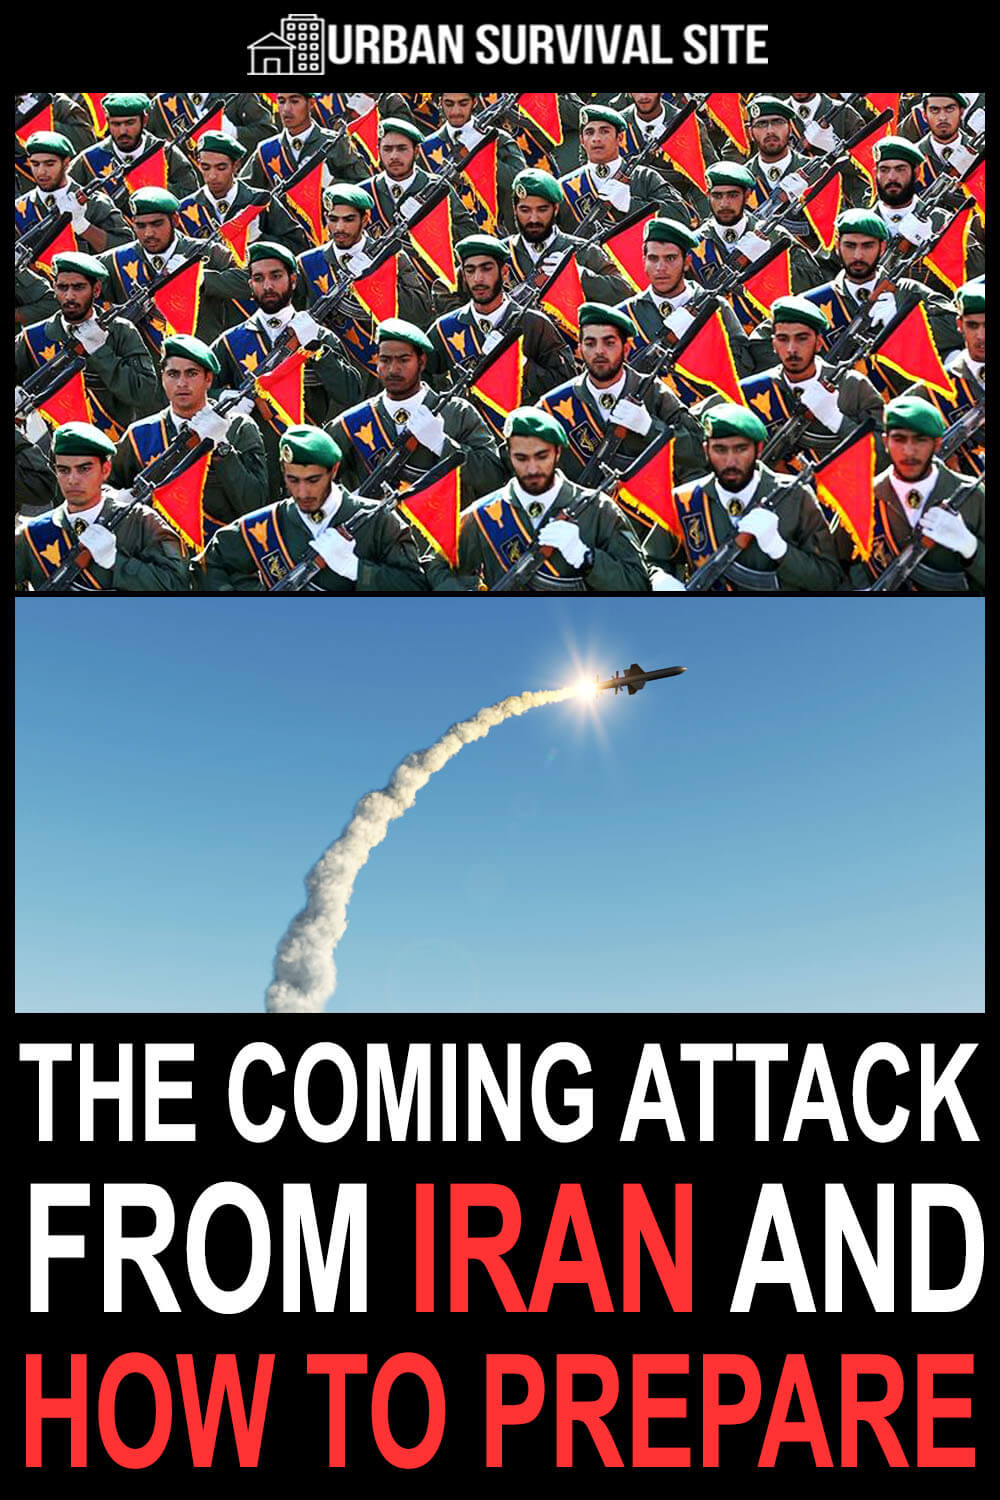 The Coming Attack From Iran And How To Prepare